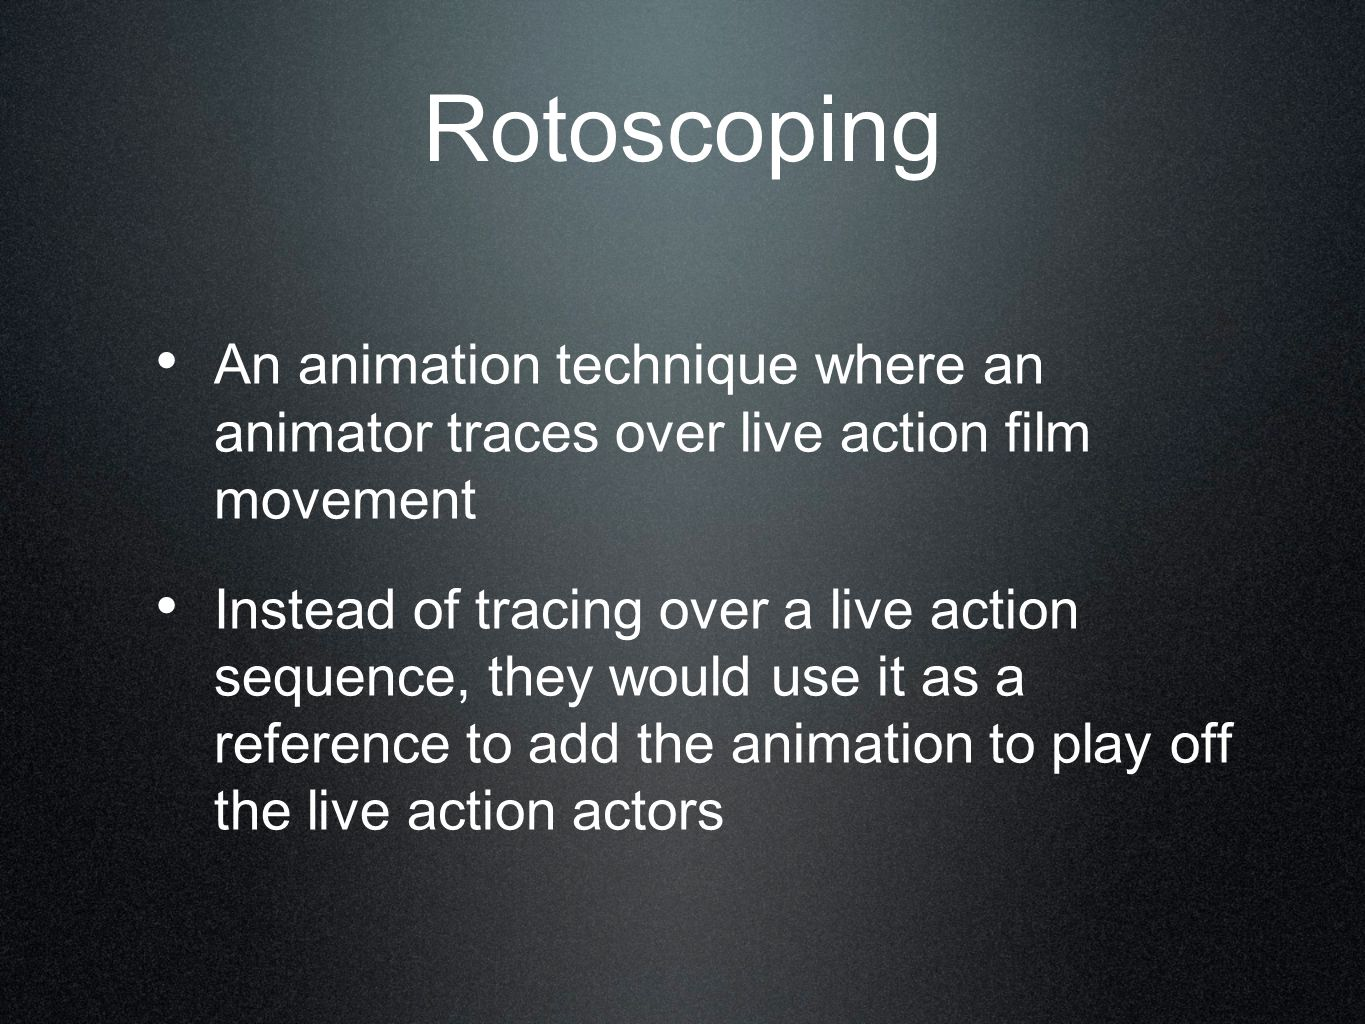 Rotoscoping An animation technique where an animator traces over live action film movement.